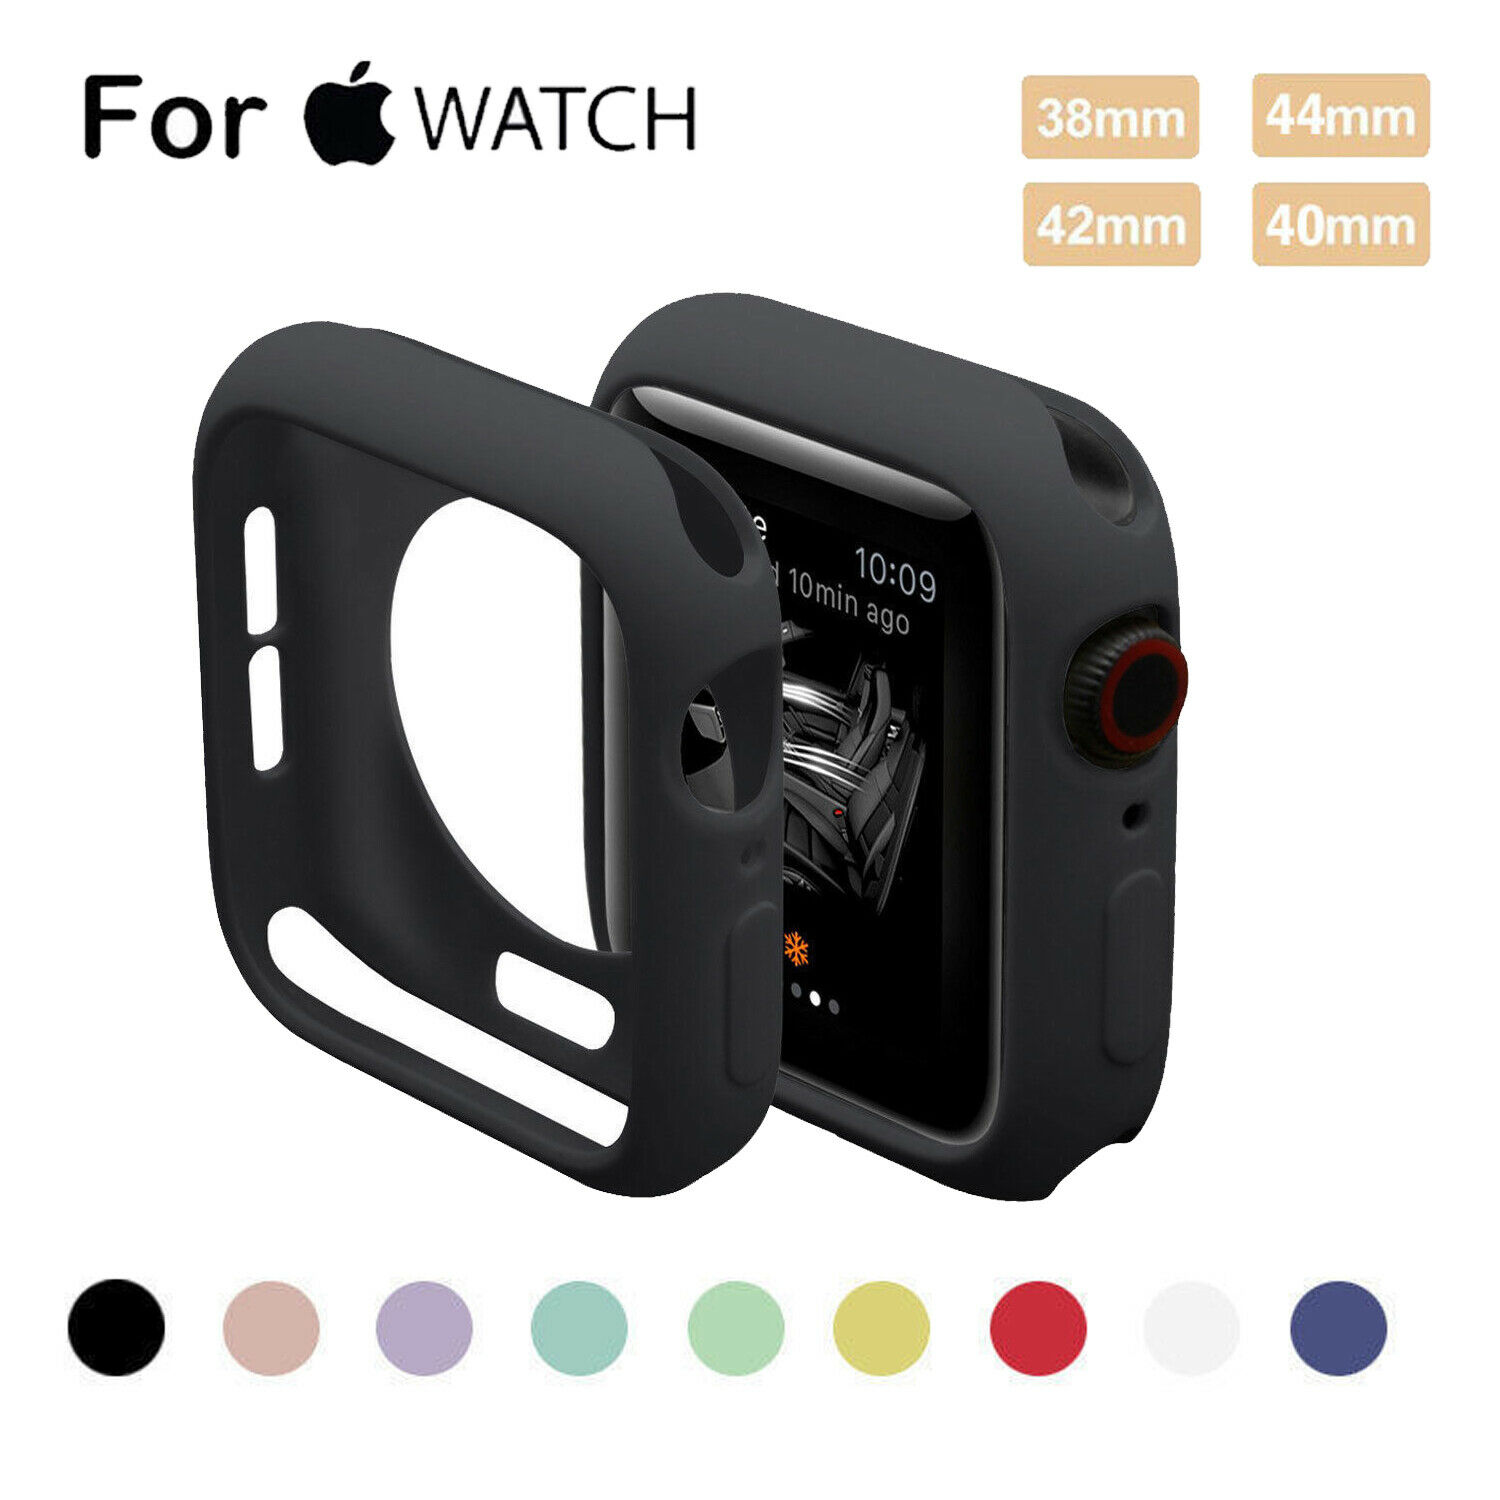 Bumper For For Apple Watch Series 4 3 2 1 Bumper Silicone Protector Case Cover 38/40/42/44mm